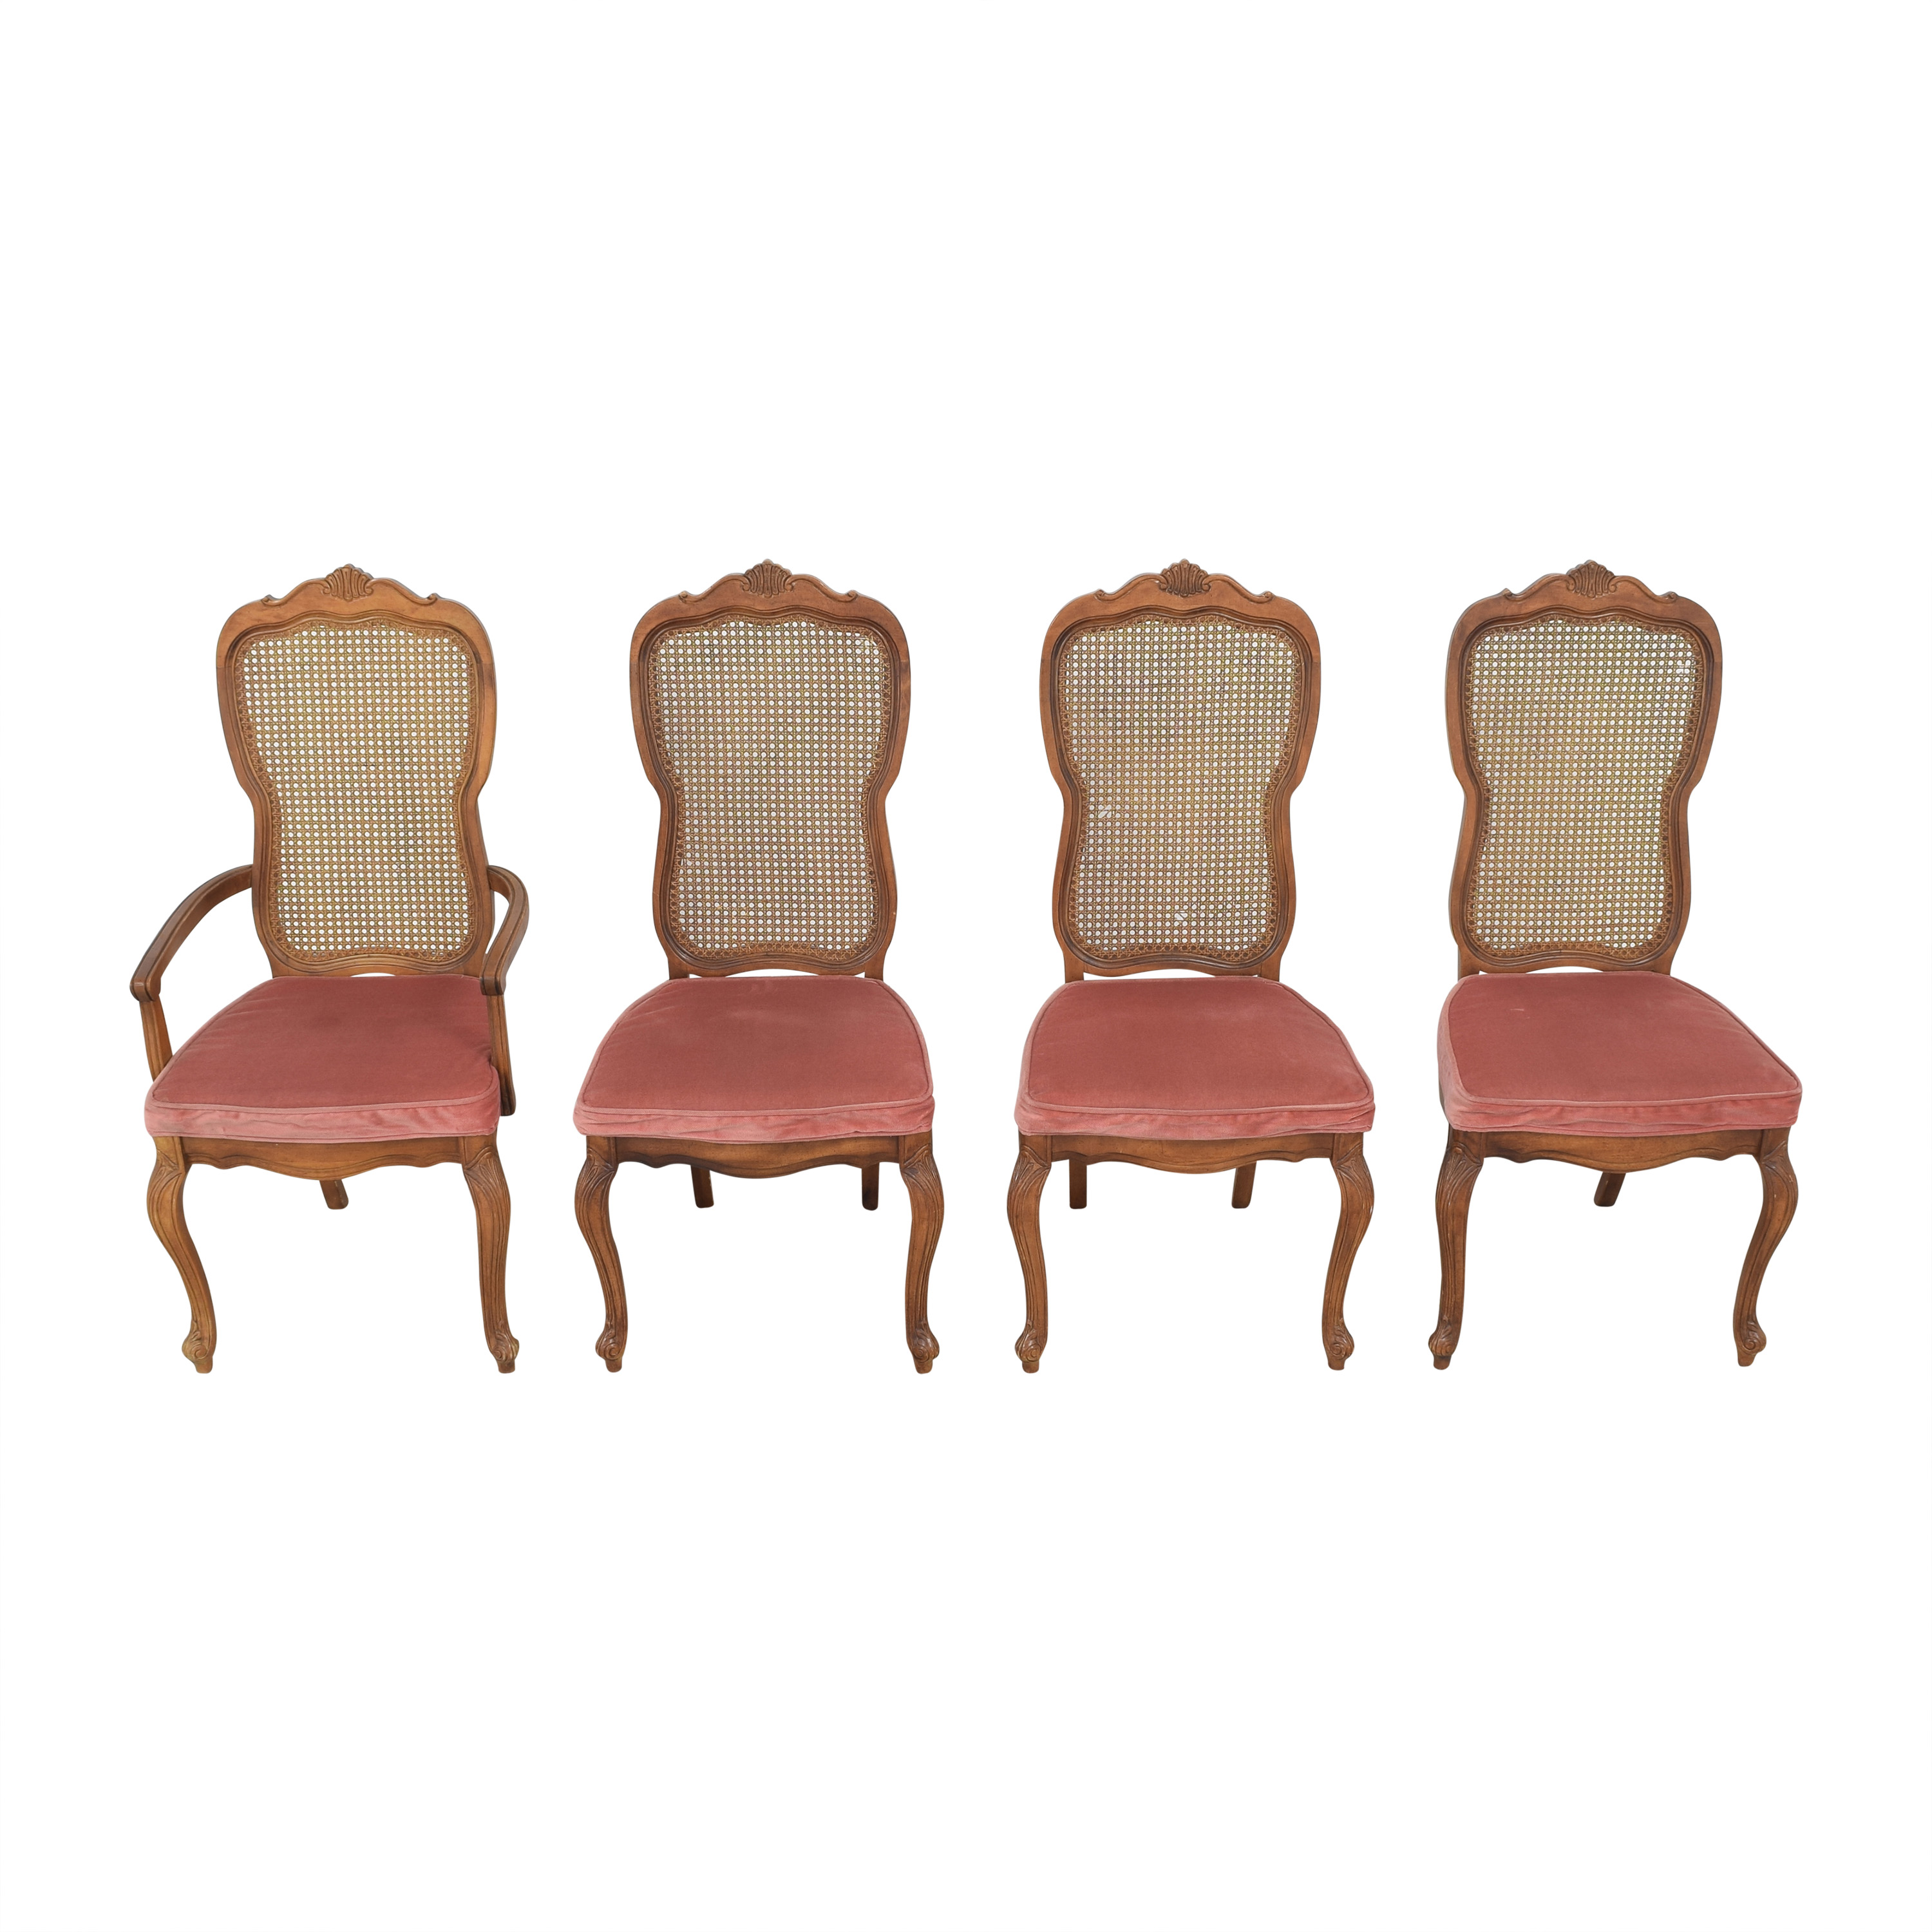 buy Stanley Furniture Stanley Furniture Dining Chairs online